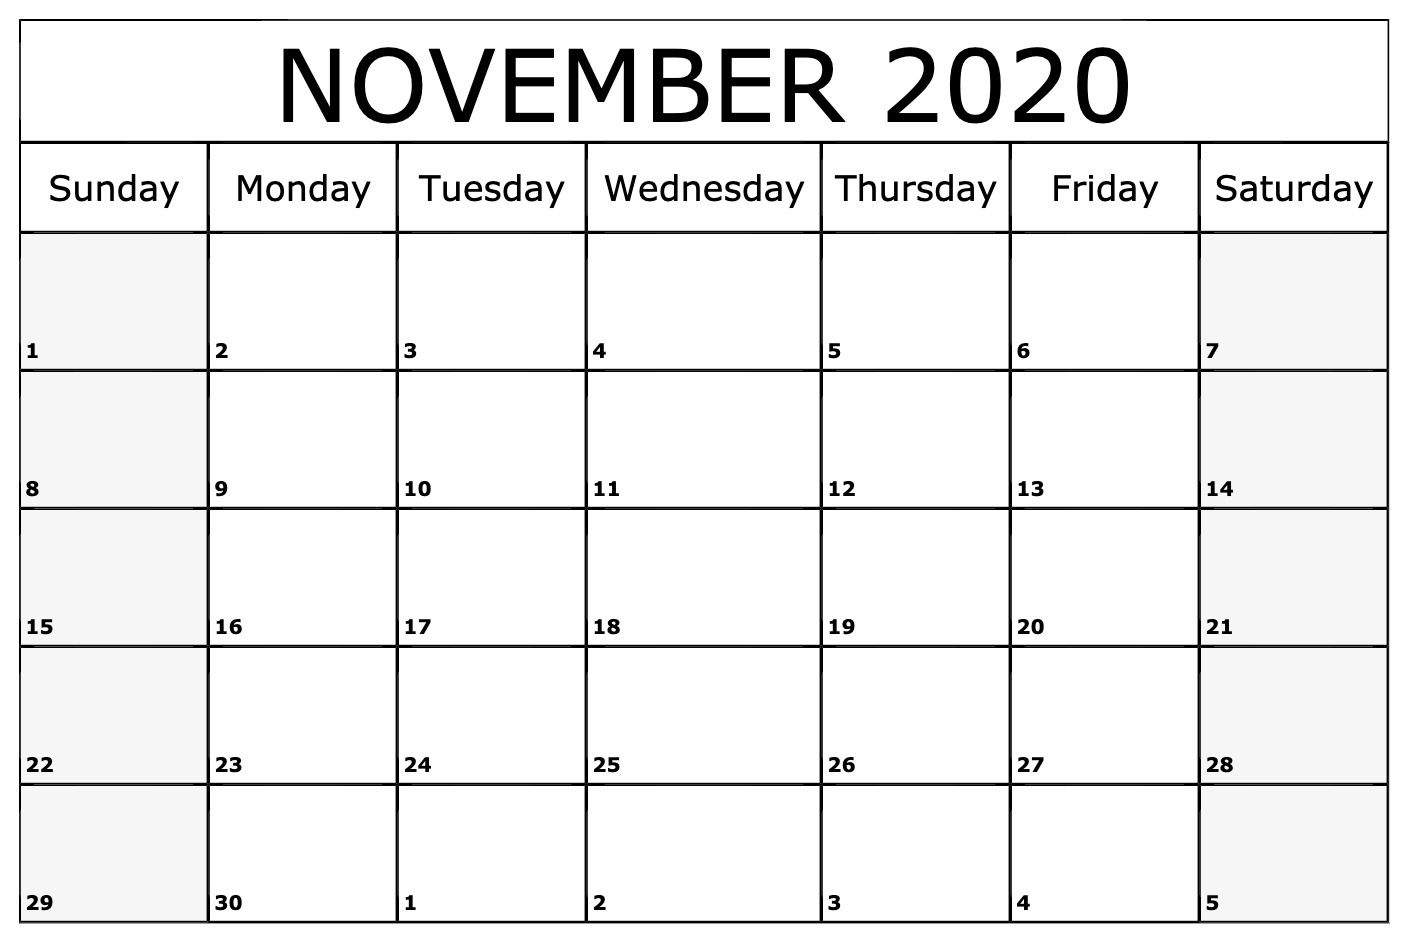 November 2020 Calendar | Printable Calendar Template pertaining to November 2020 Calendar Excel